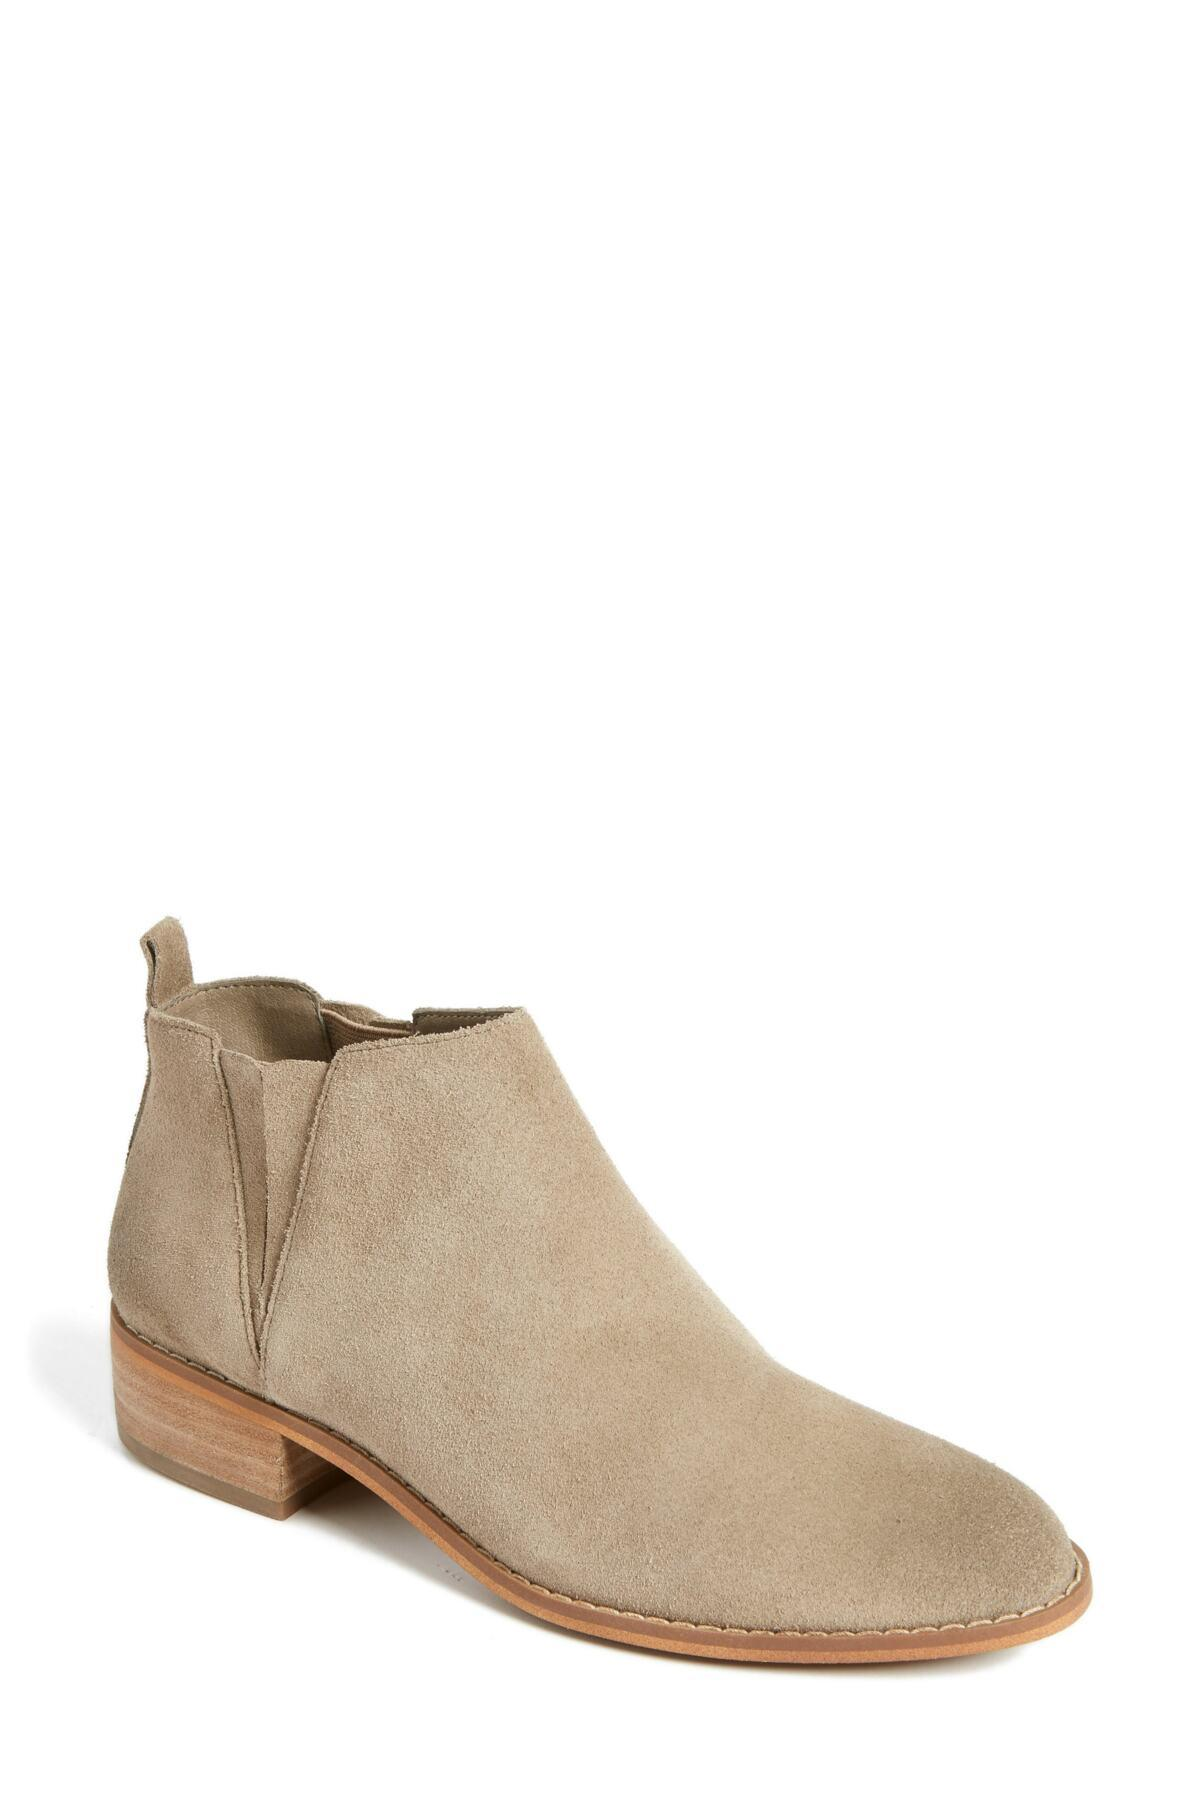 1e917f13f88 Lyst - BP. Kacee Bootie (women) in Brown - Save 63%